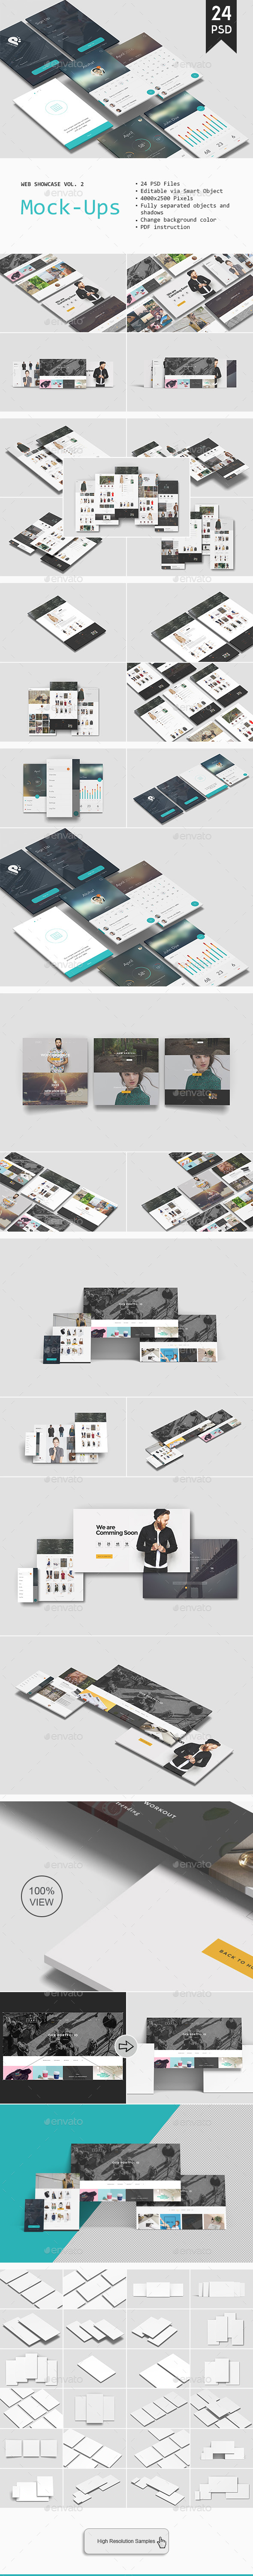 Web Showcase Mockup Vol. 2 - Website Displays